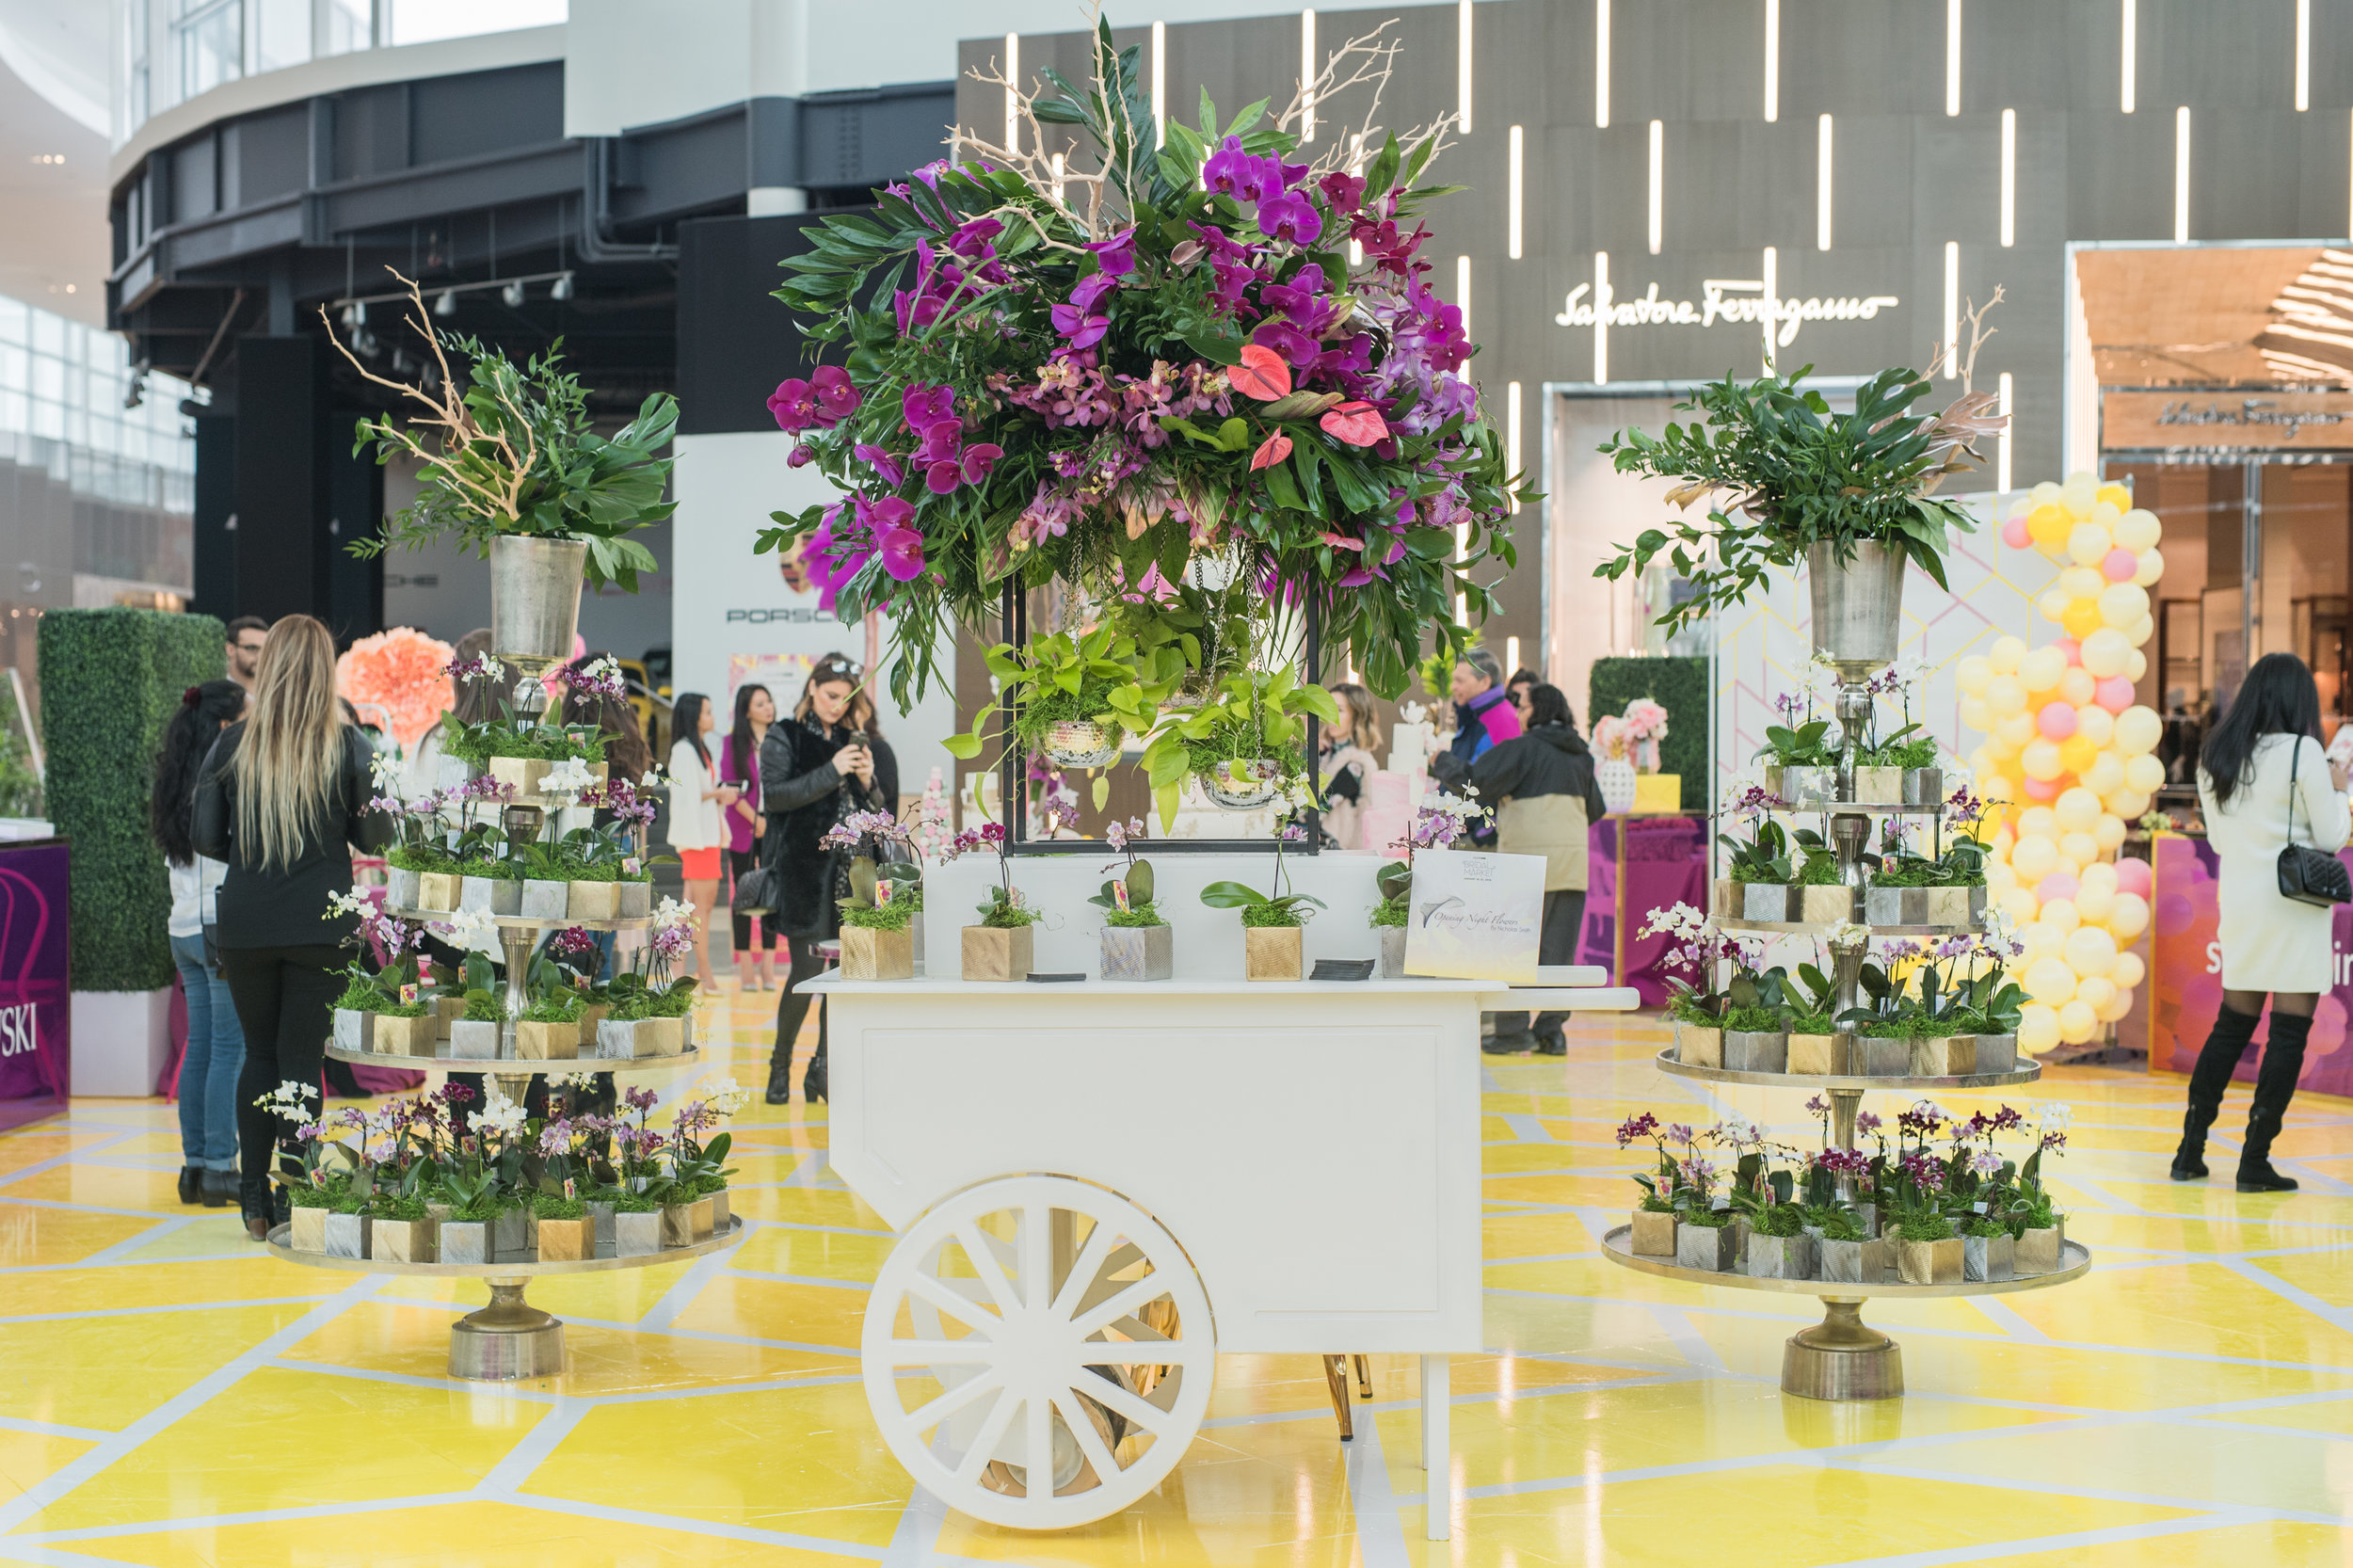 August In Bloom - Flower cart - #SQ1Bridal (Square One Shopping Centre)